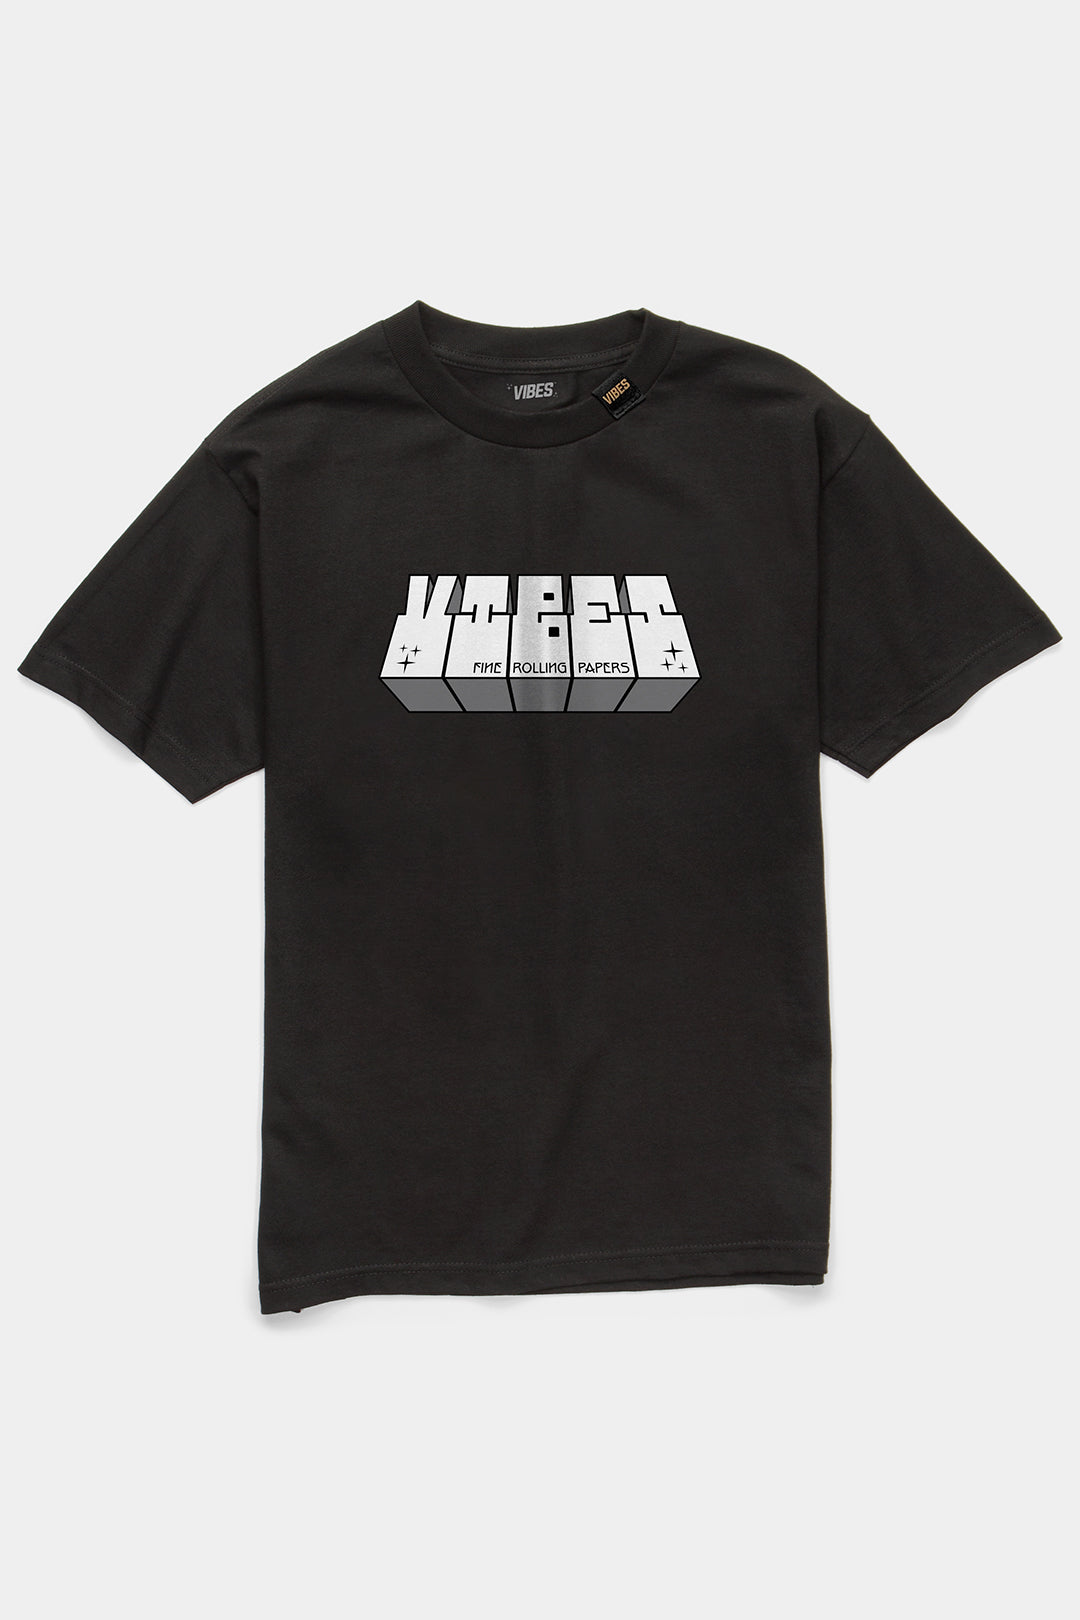 VIBES Block Collection Black T-Shirt